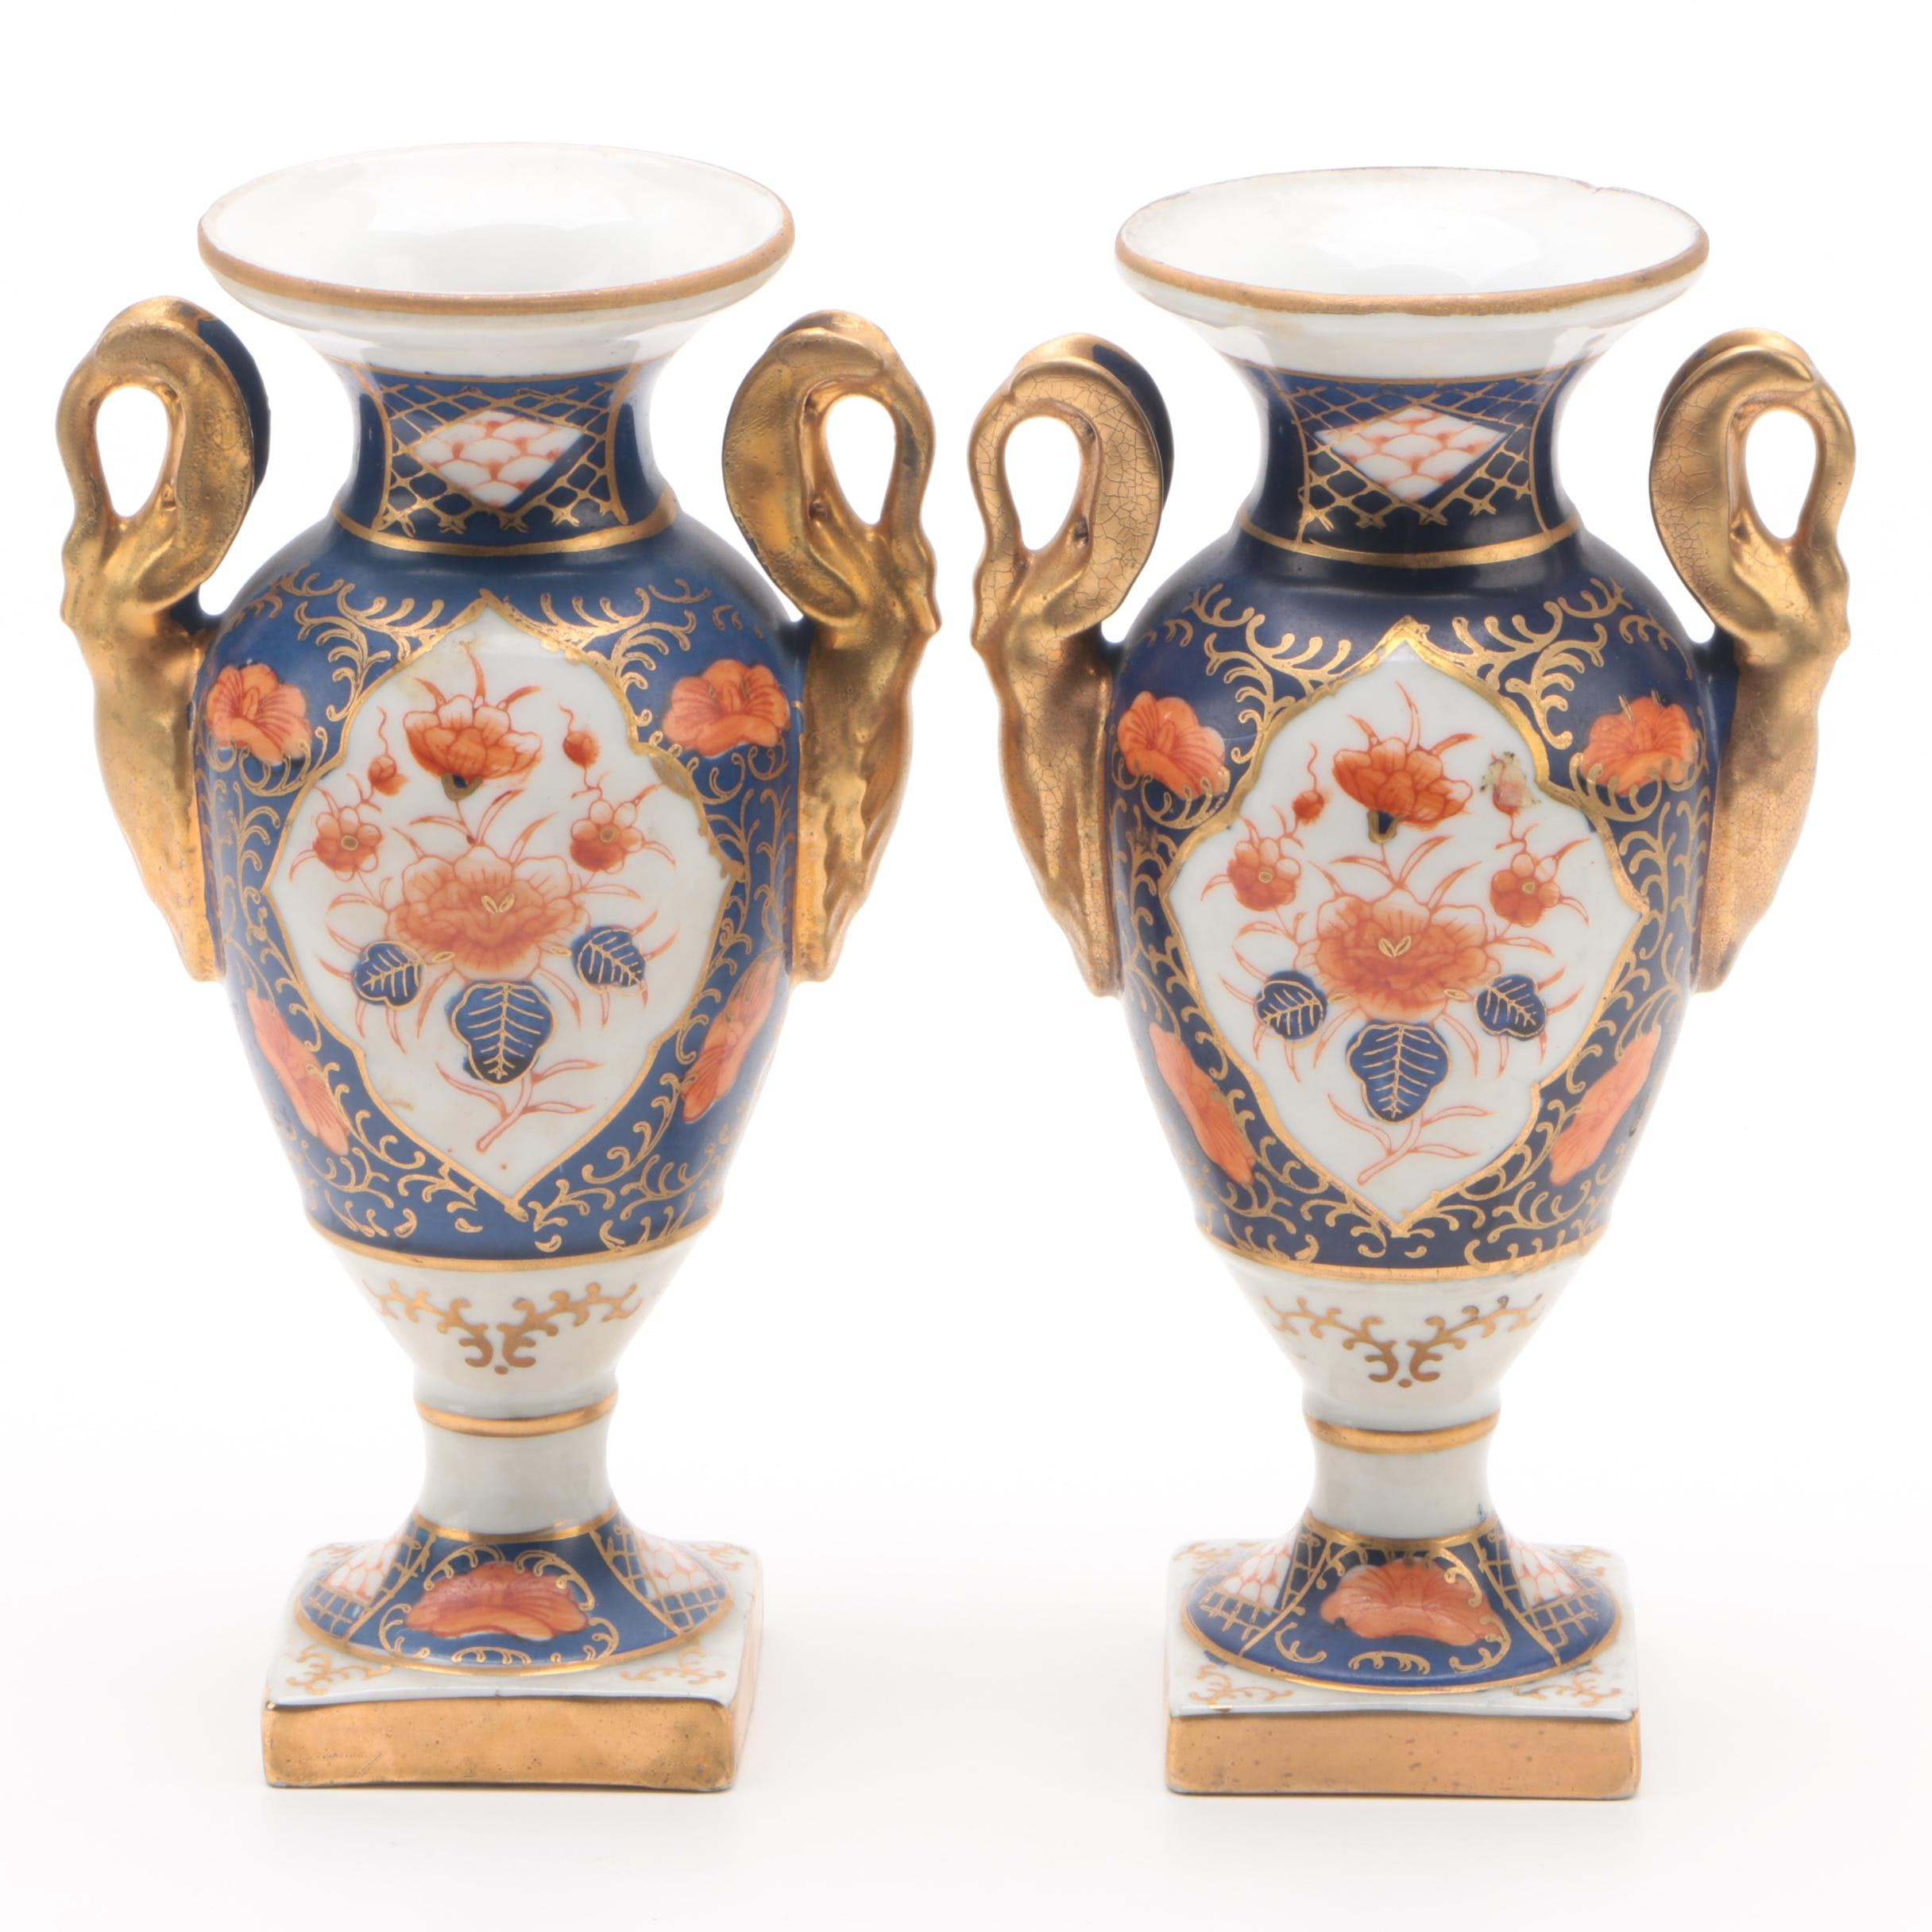 Vintage Sevres Style Hand-Painted Imari Palette Porcelain Urns with Swan Handles